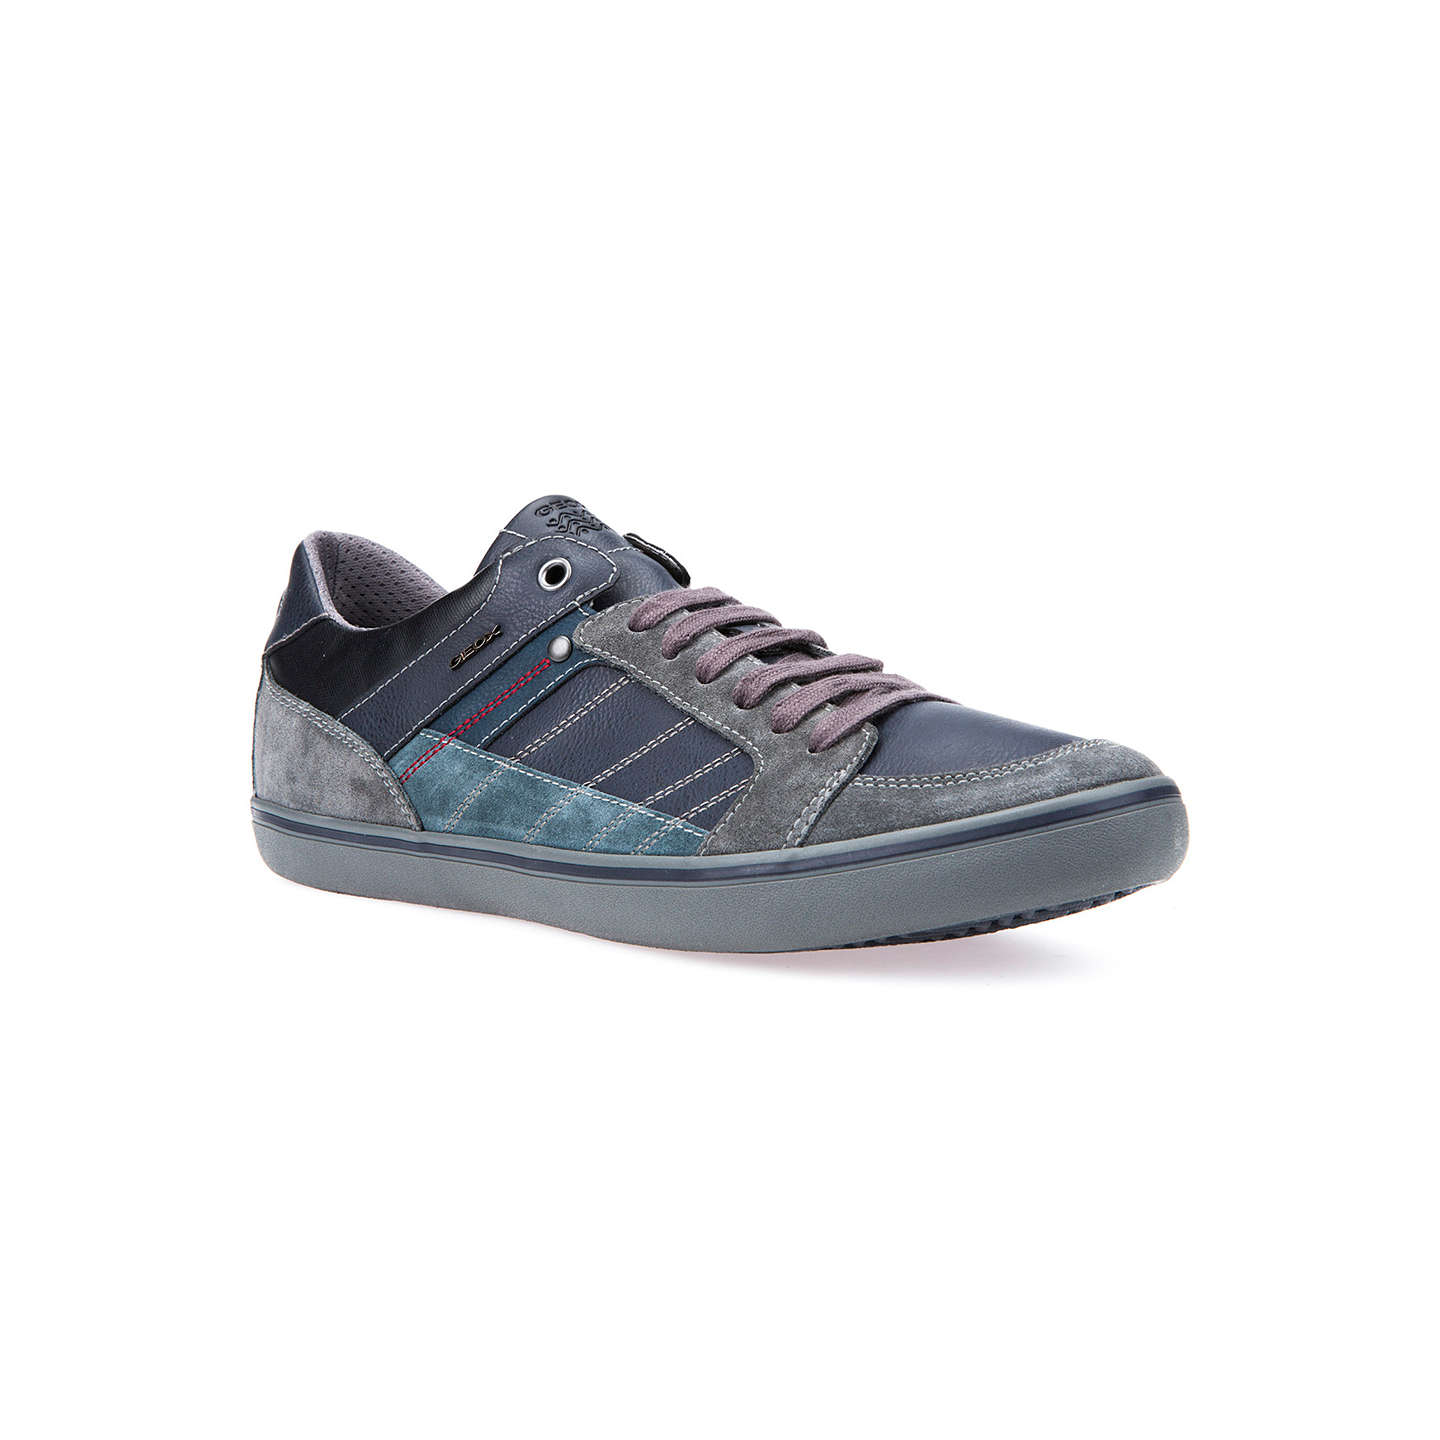 BuyGeox Box Cupsole Anthracite Shoes, Anthracite/Navy, 7 Online at johnlewis.com